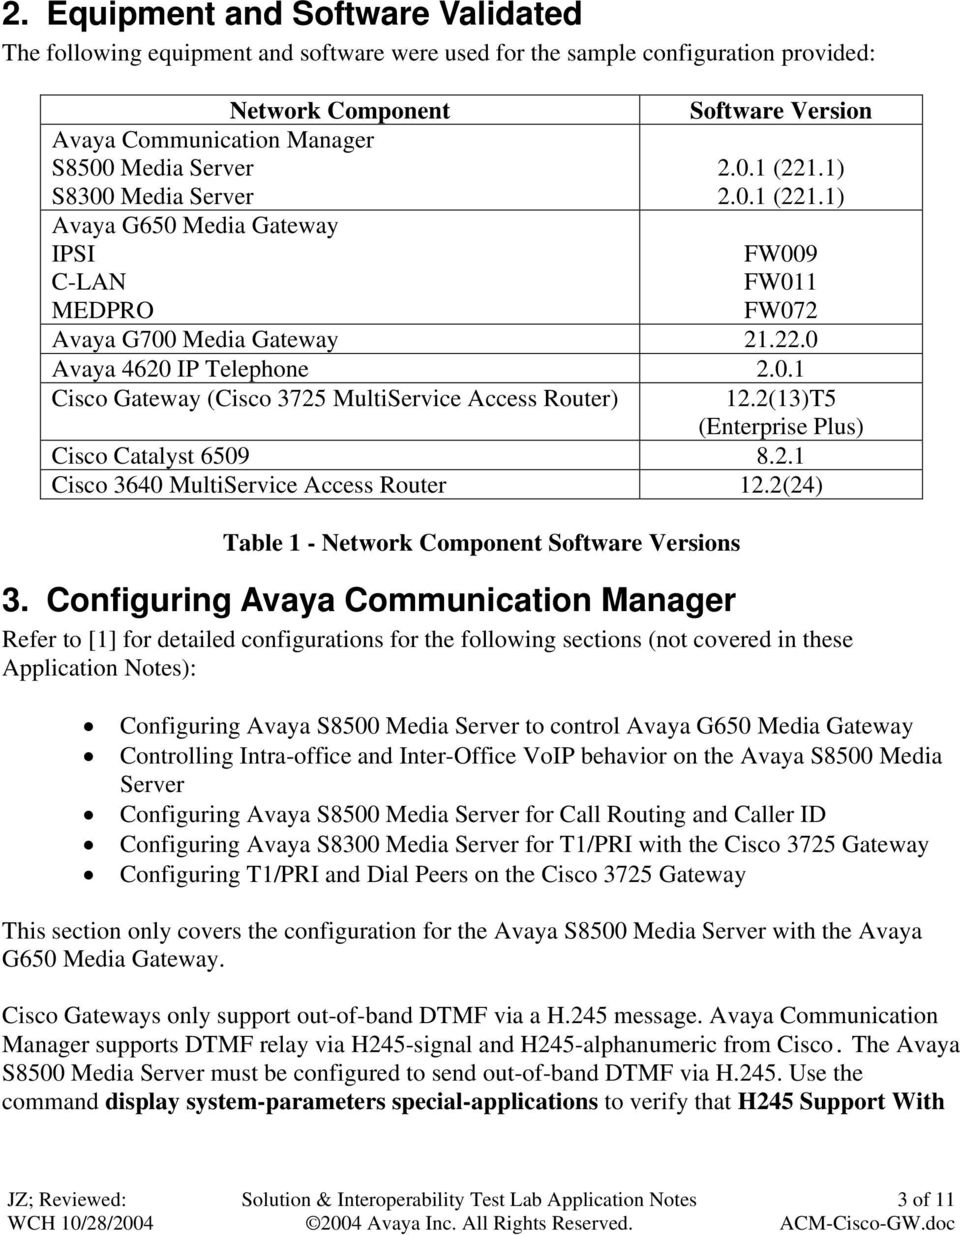 Configuring Avaya Communication Manager with Cisco VoIP